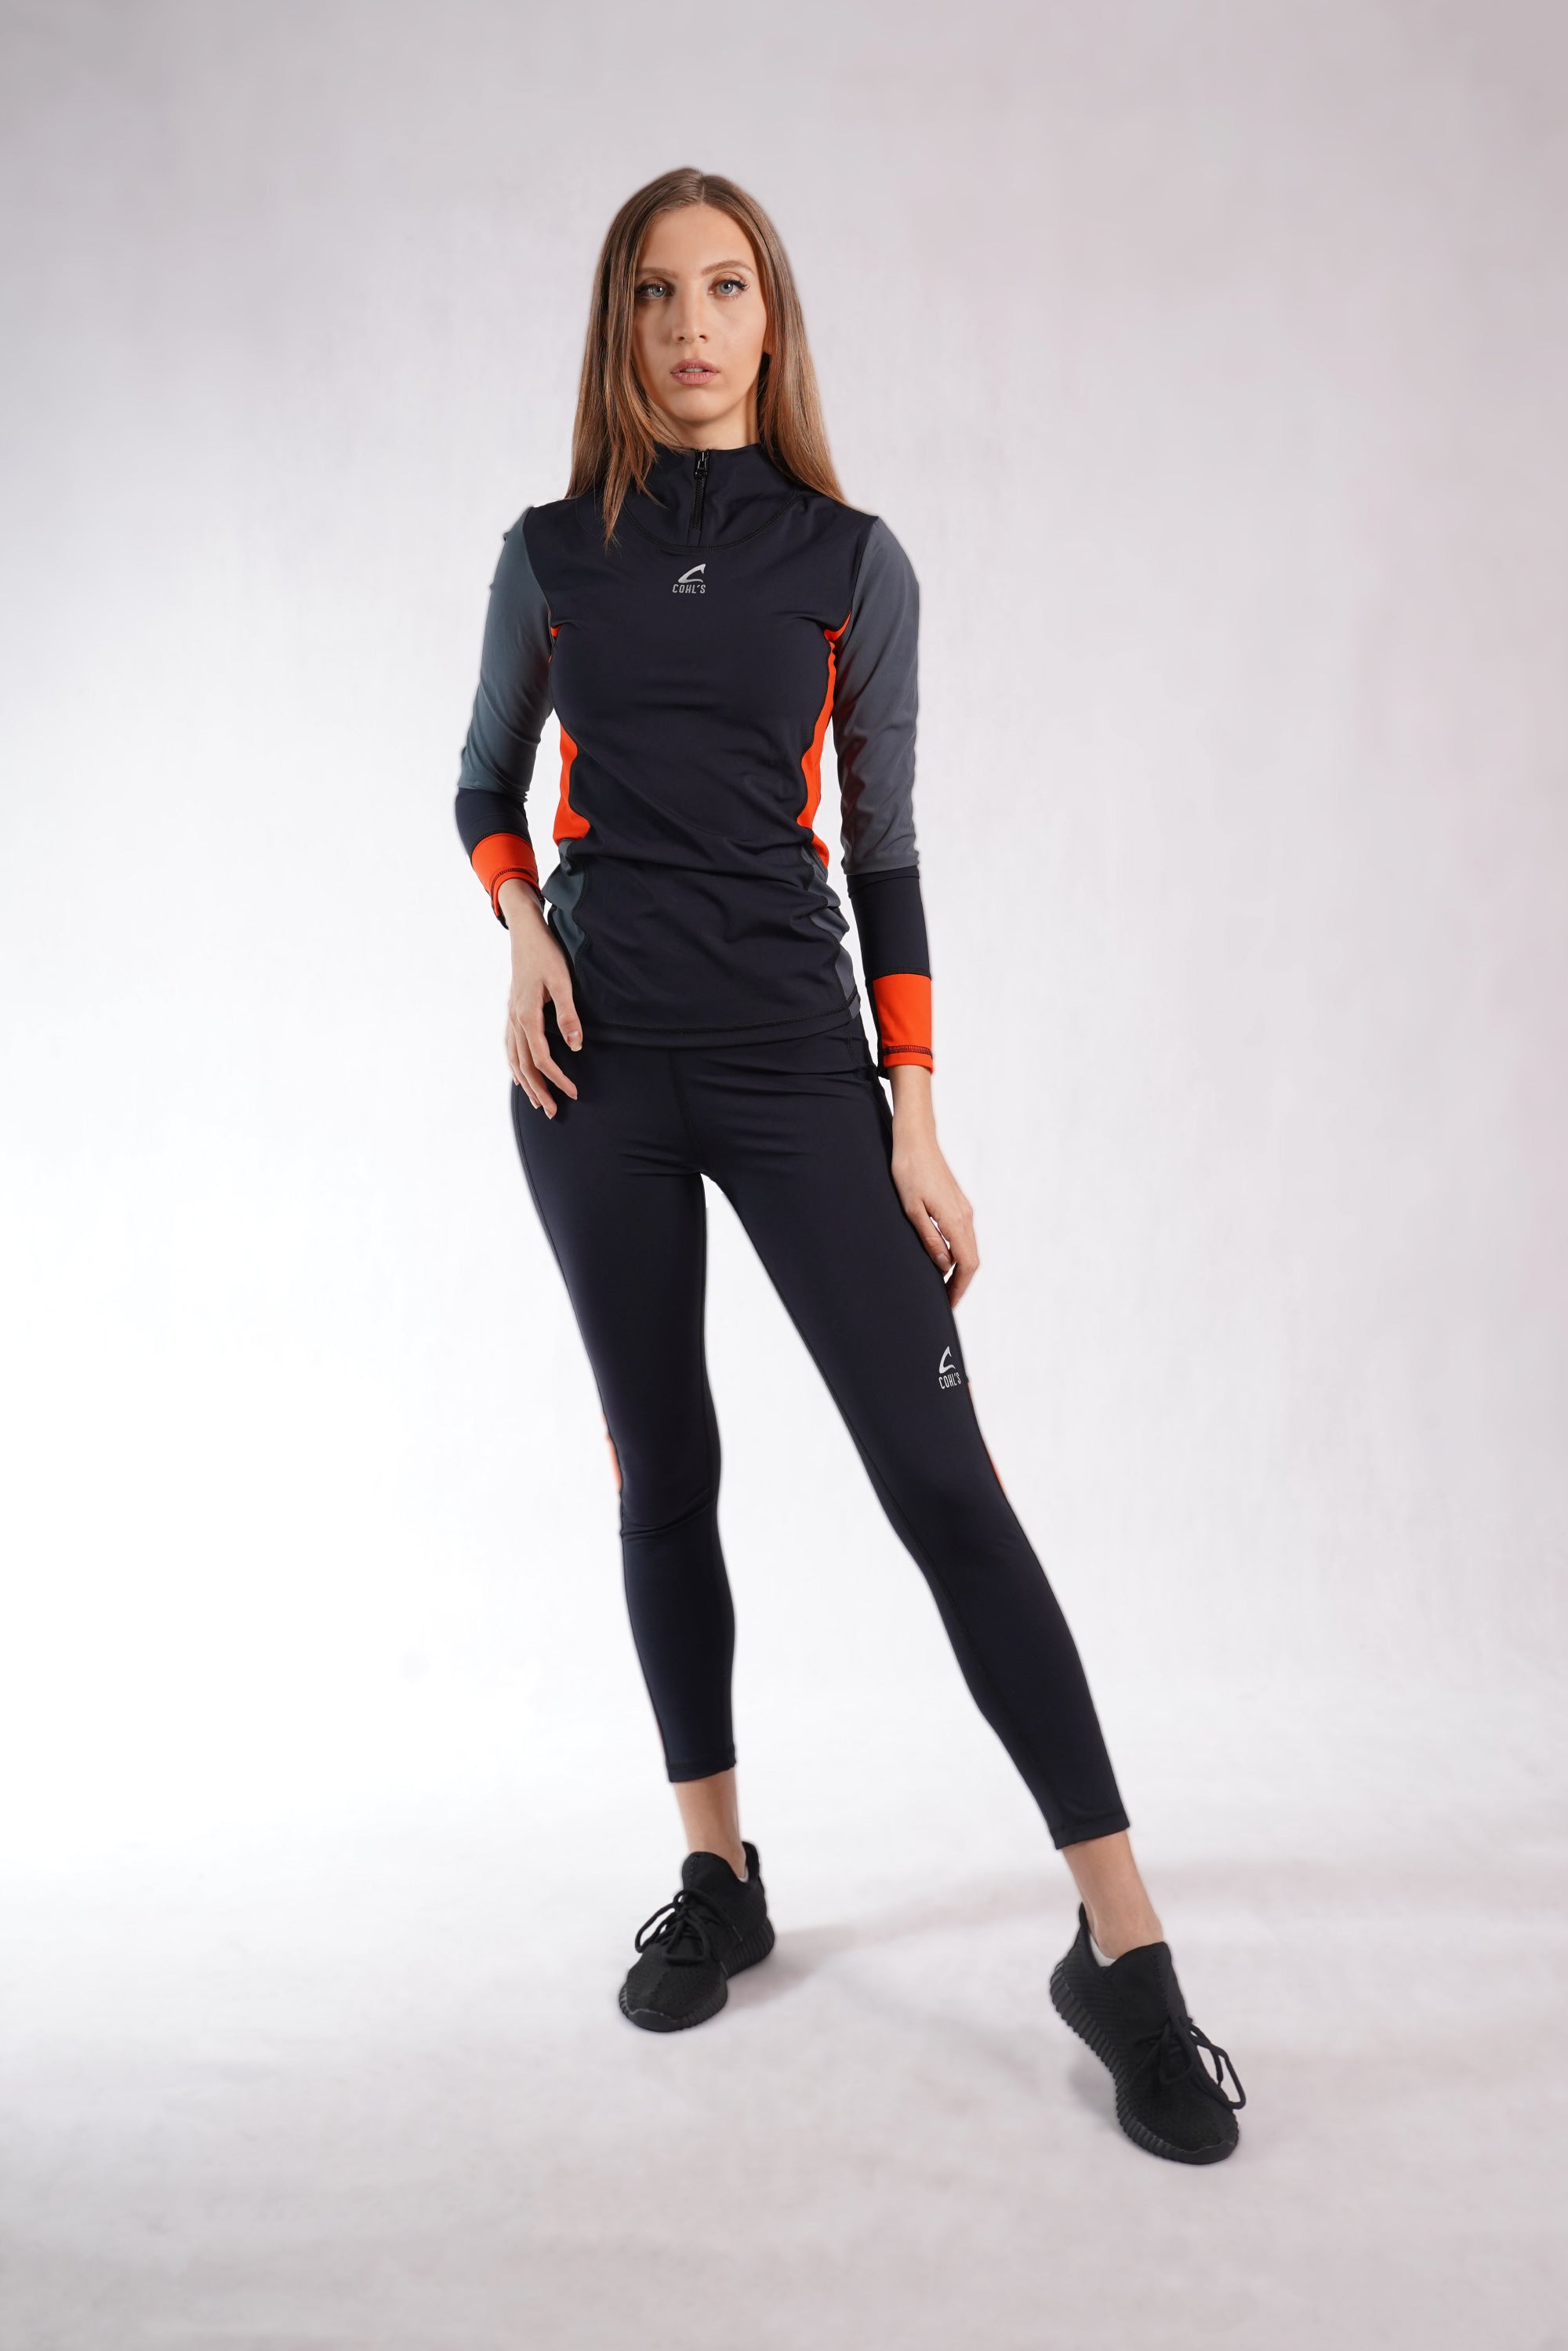 Turtleneck Sweatshirt Black/Orange -C142002